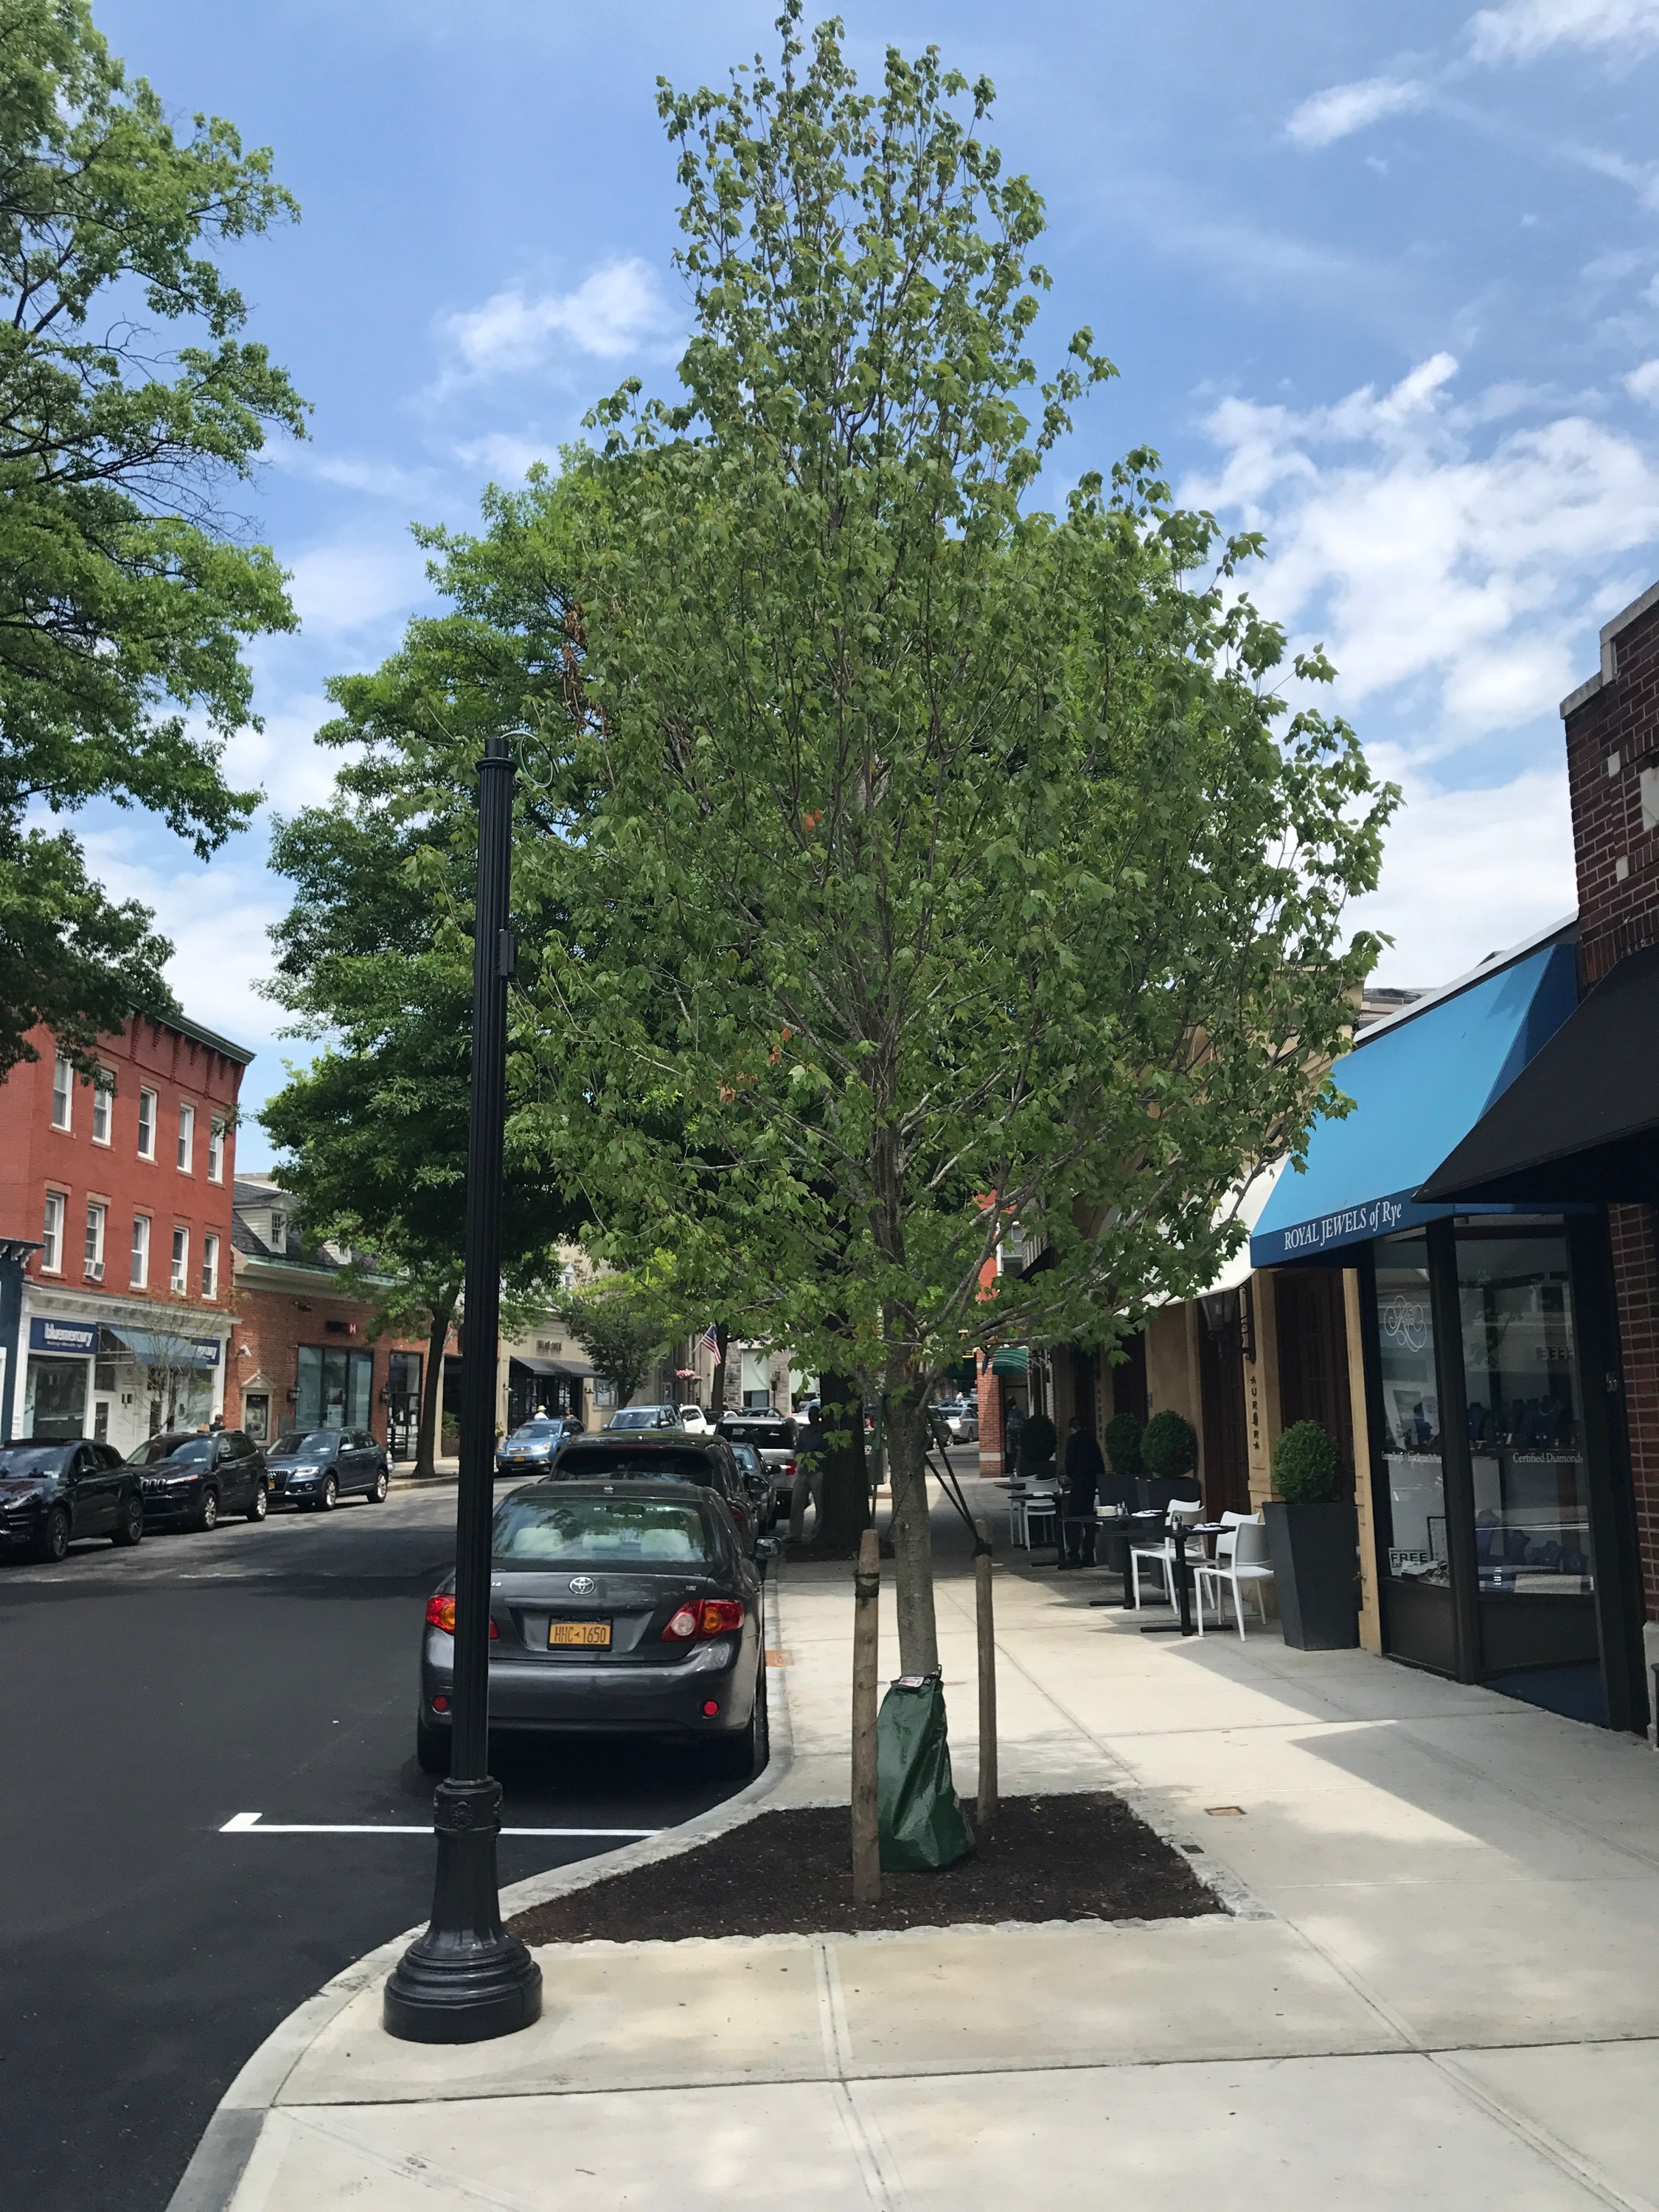 One of Rye's street trees funded by the Rye Tree Fund.